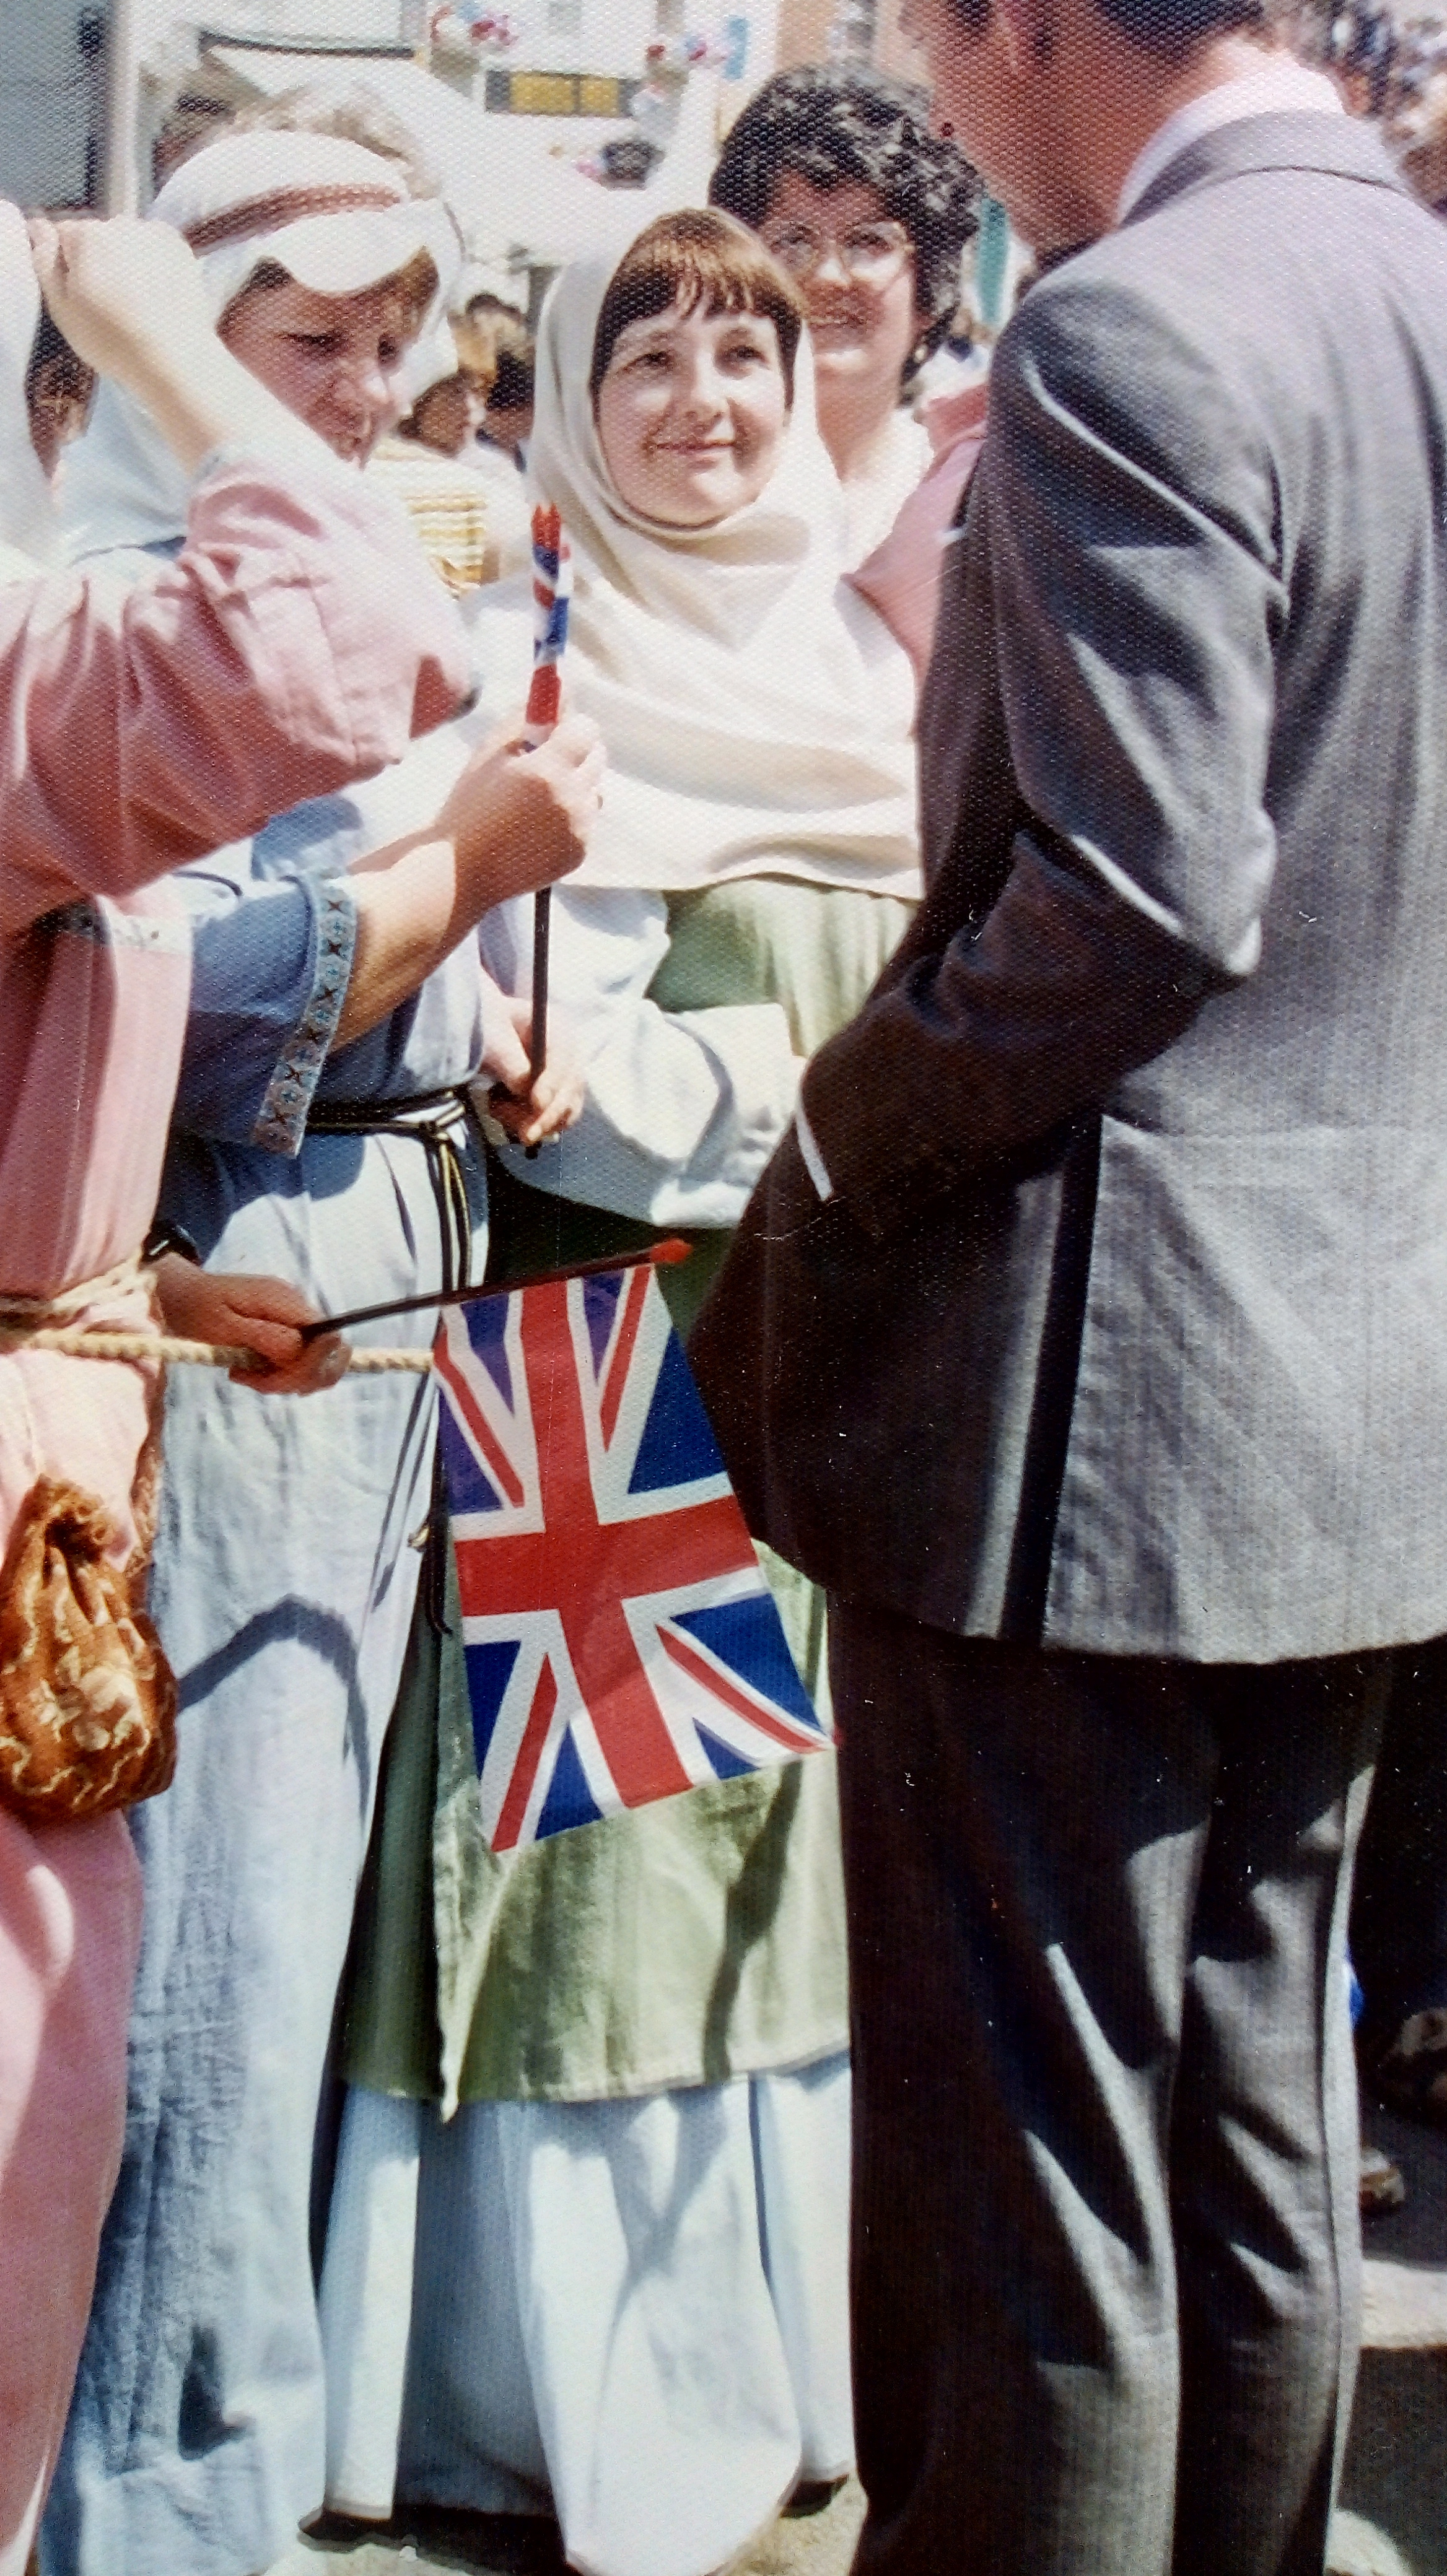 Jean Higgs and Pat Burd talking to Prince Charles in Montgomery while celebrating the Queens 25th anniversary 1977.